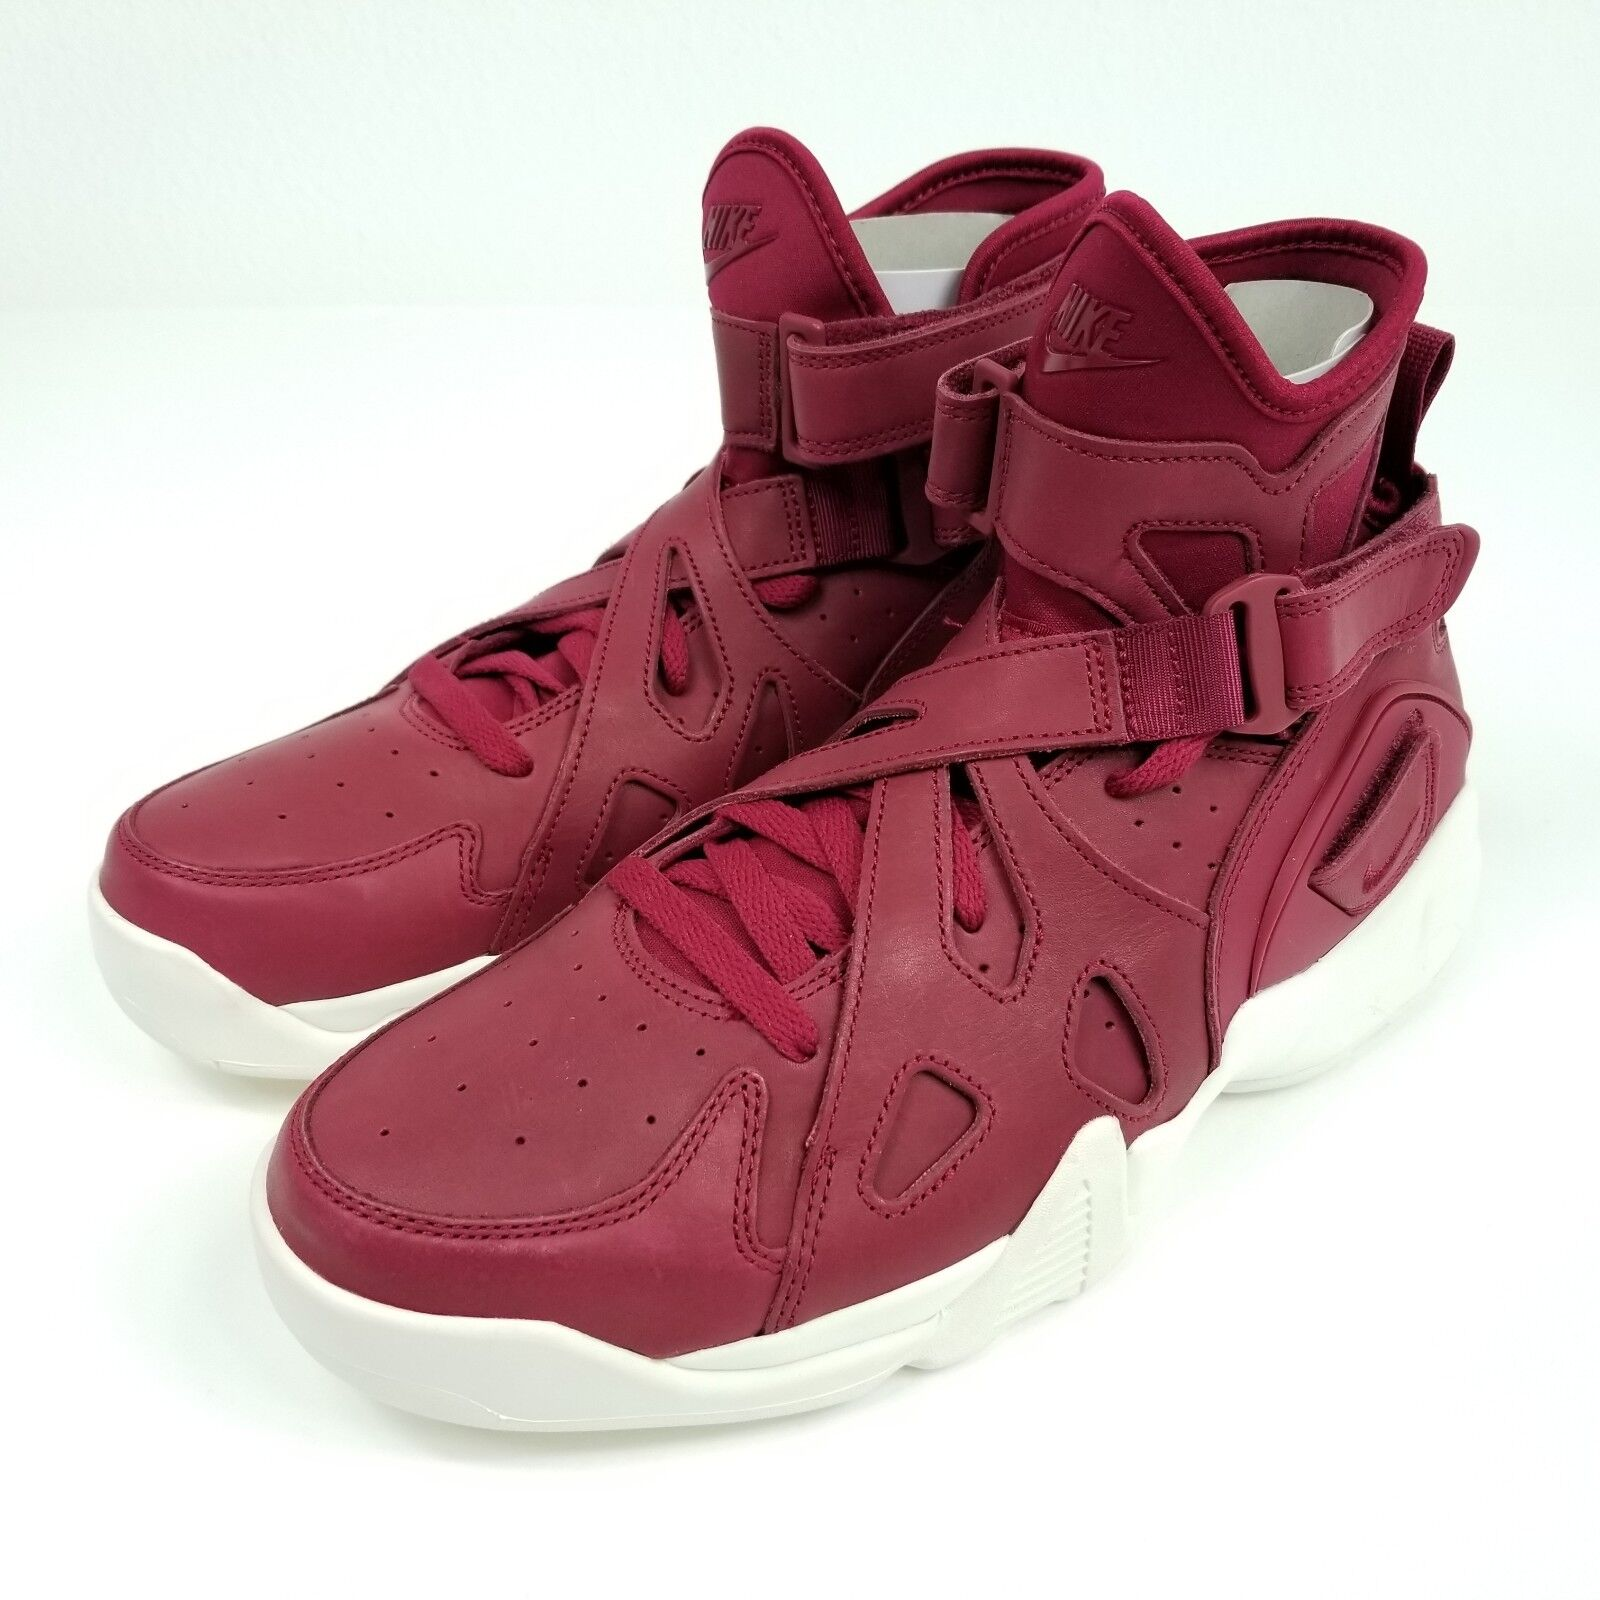 NEW NIKE AIR UNLIMITED MENS SZ 10 NOBLE SHOES NOBLE 10 RED SAIL WHITE NIKE LAB 854318 661 6abdd8